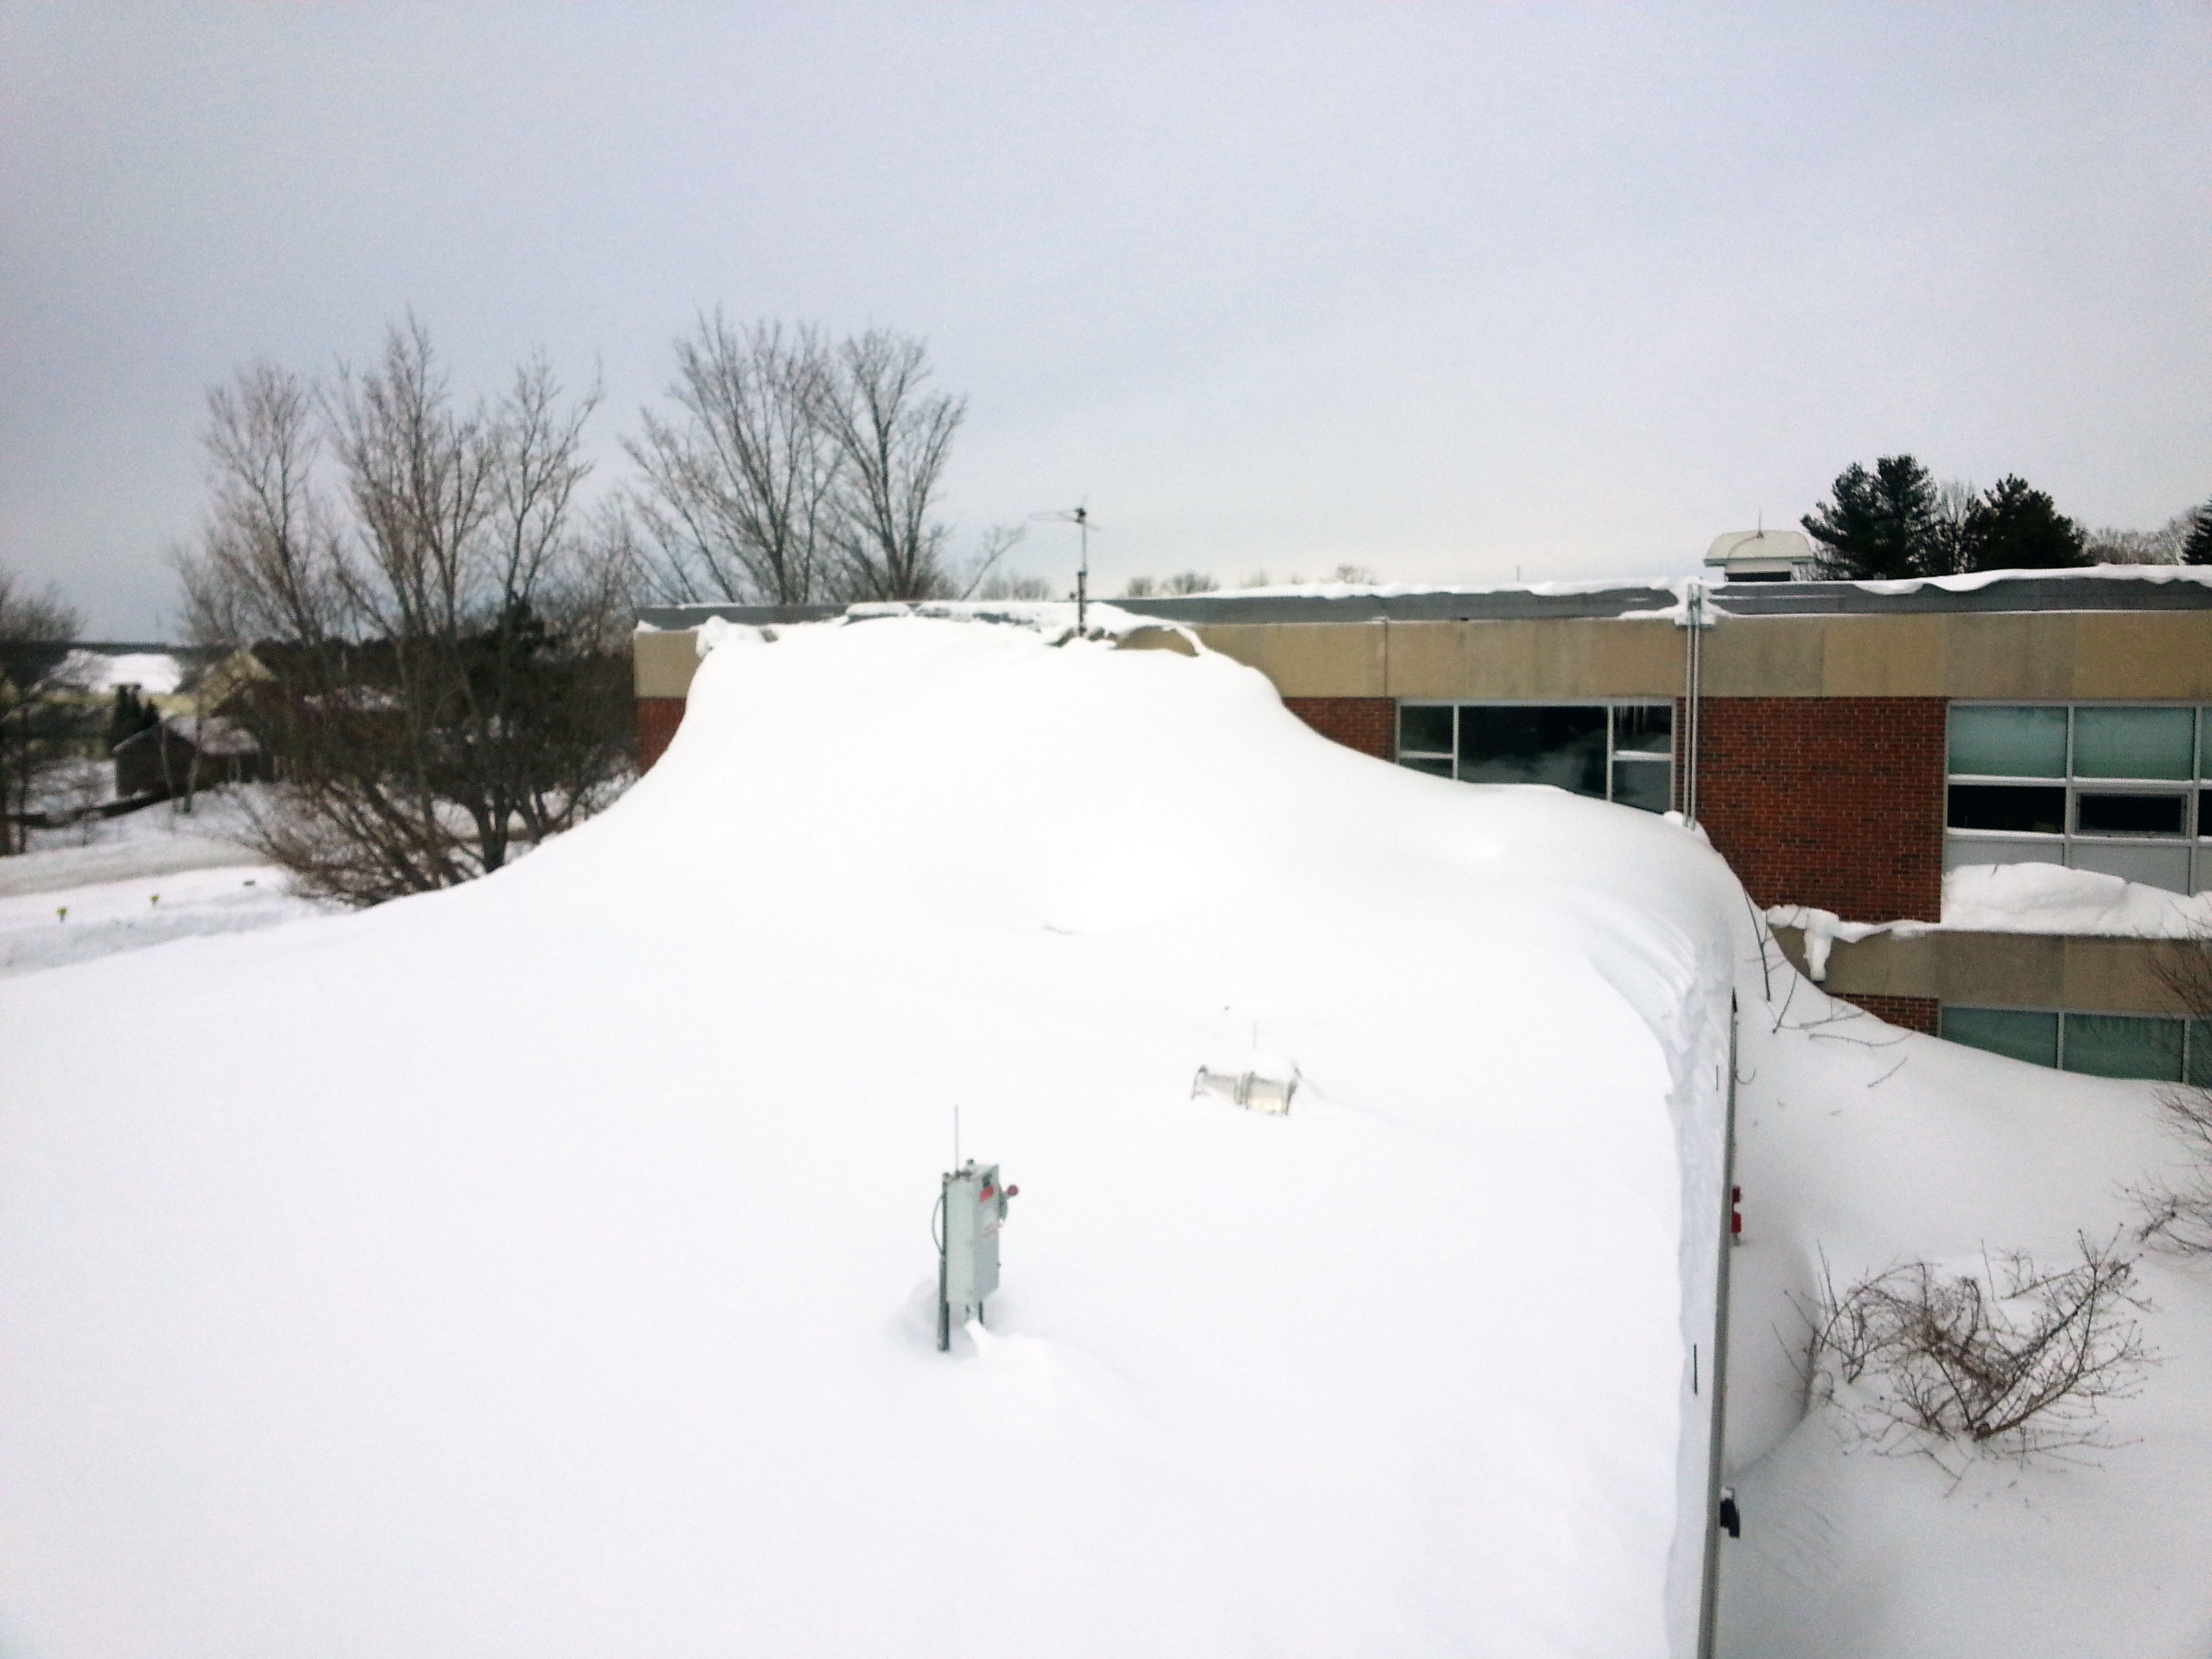 Great lakes systems blog kyle clausen for Snow loads on roofs